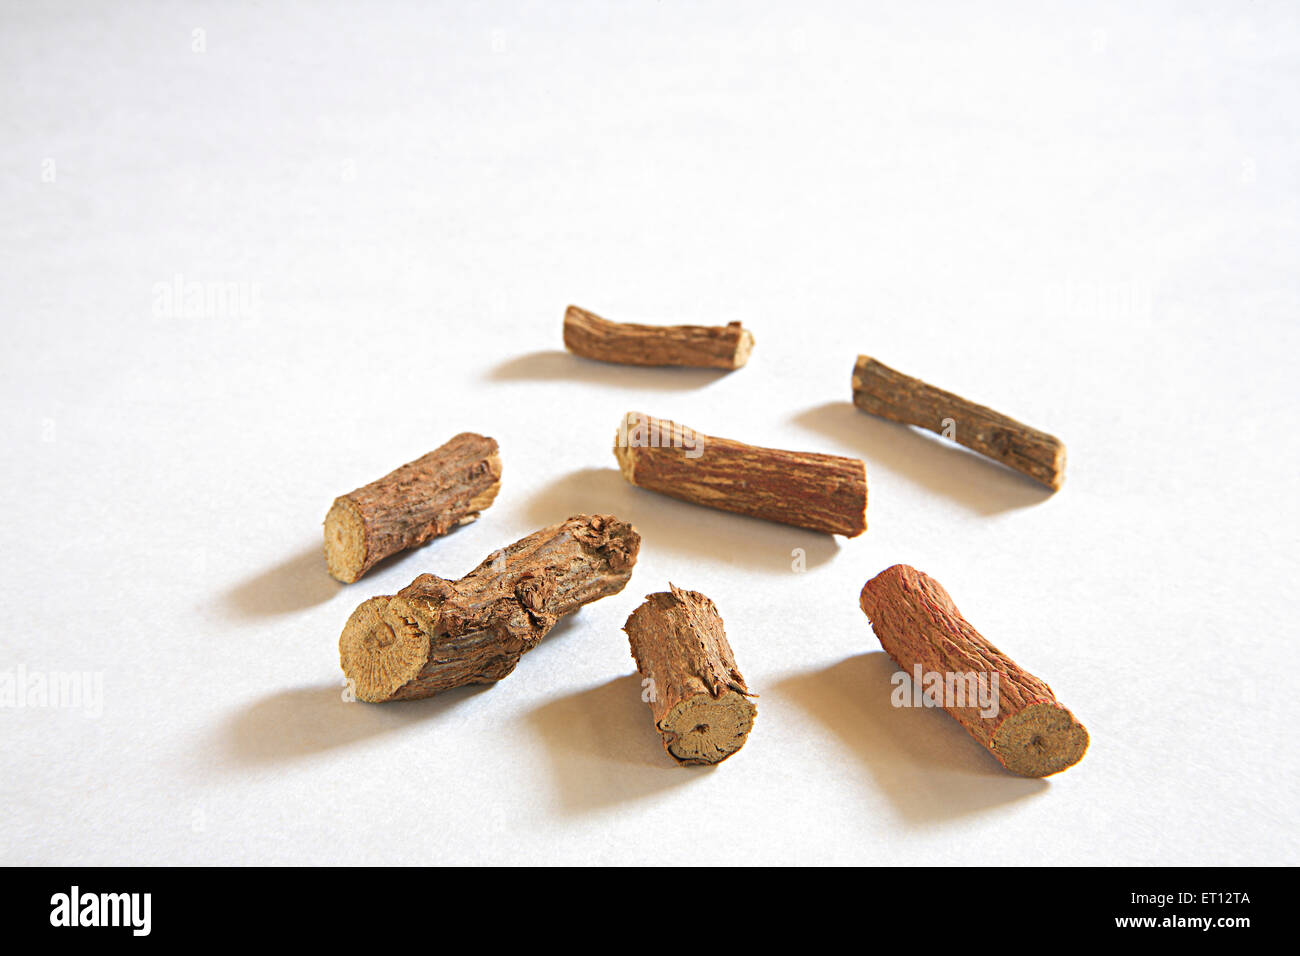 Mulethi Liquorice Glycyrrhiza glabra made from root of  European plant used in medicine and confectionery a flavoured Stock Photo